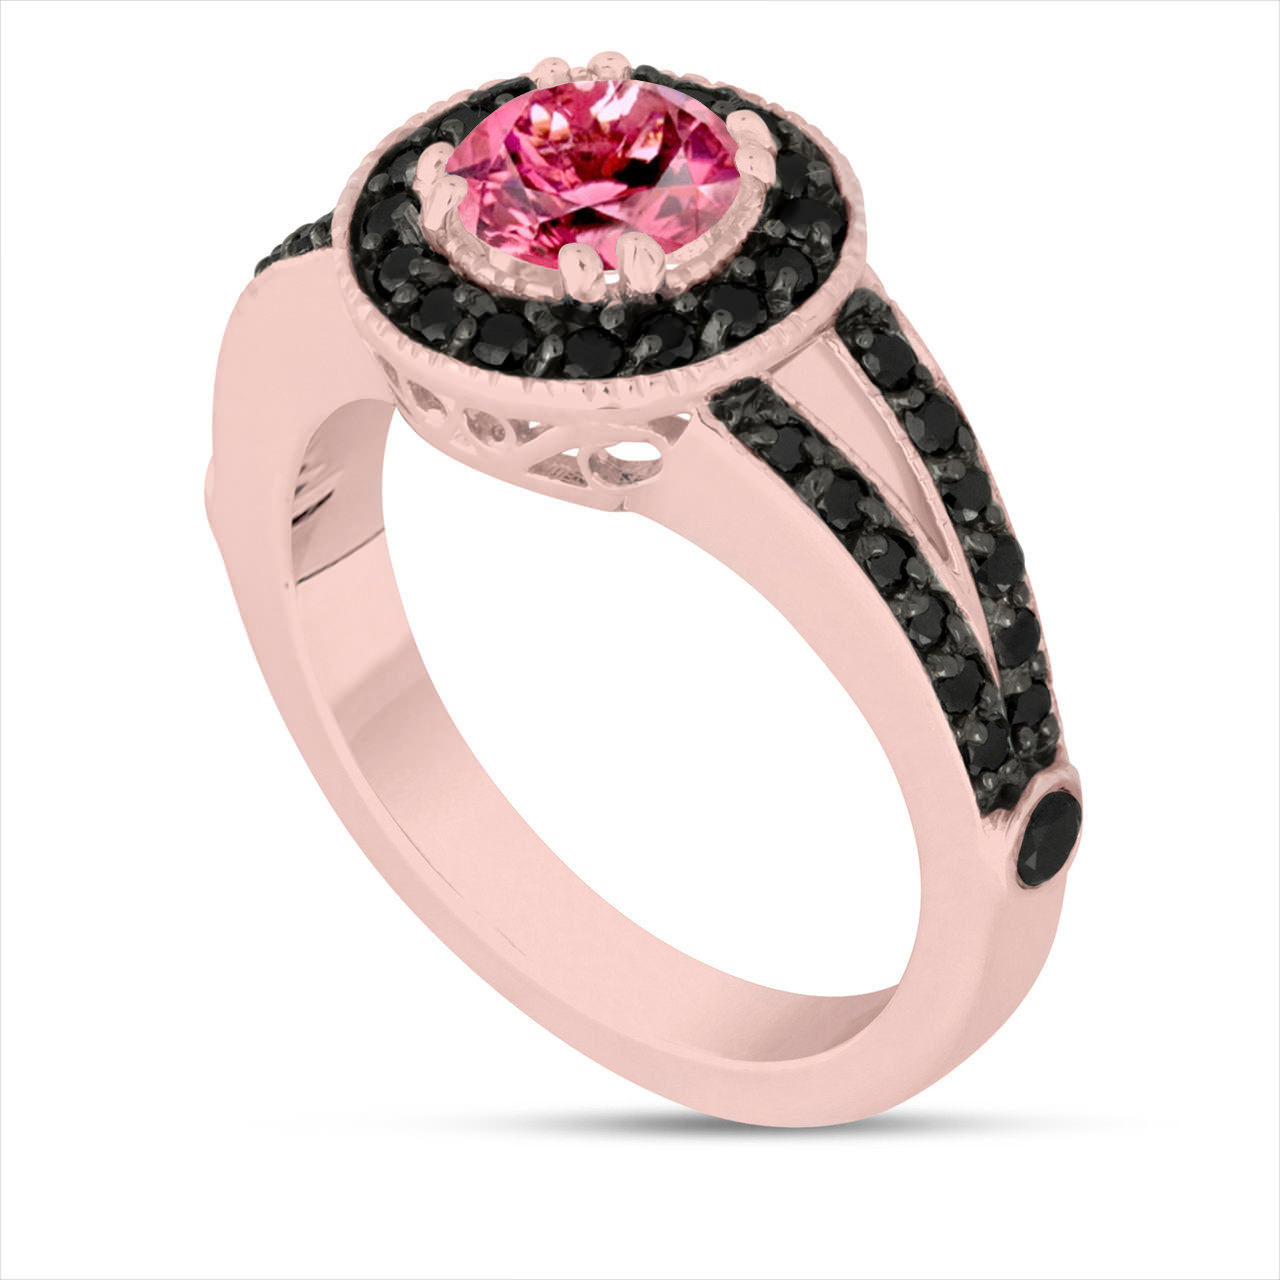 Black And Pink Wedding Rings: 22+ Black And Pink Wedding Rings Designs, Trends